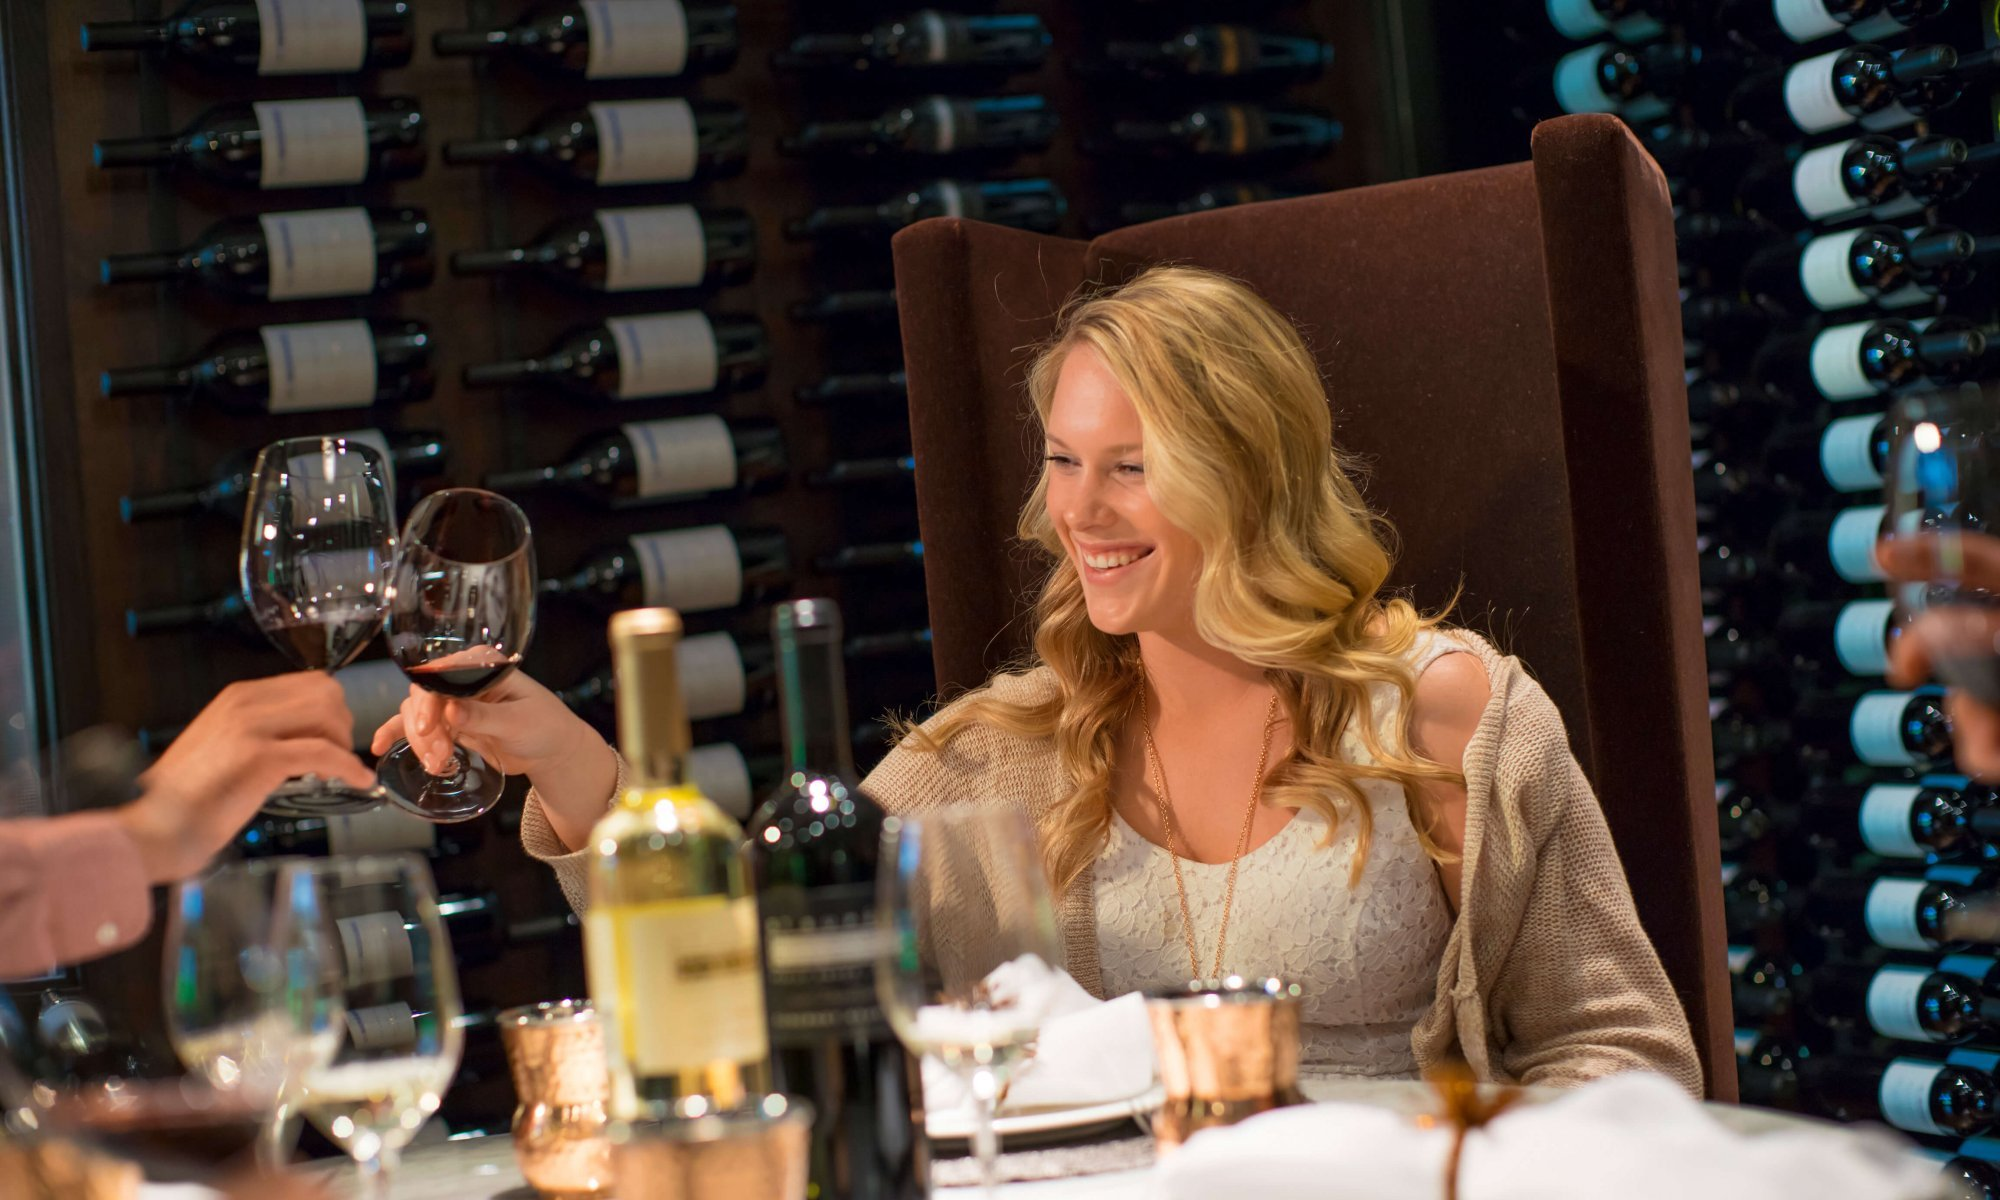 blonde woman sitting at table with a bottle of red and white wine clinking glasses with another guest